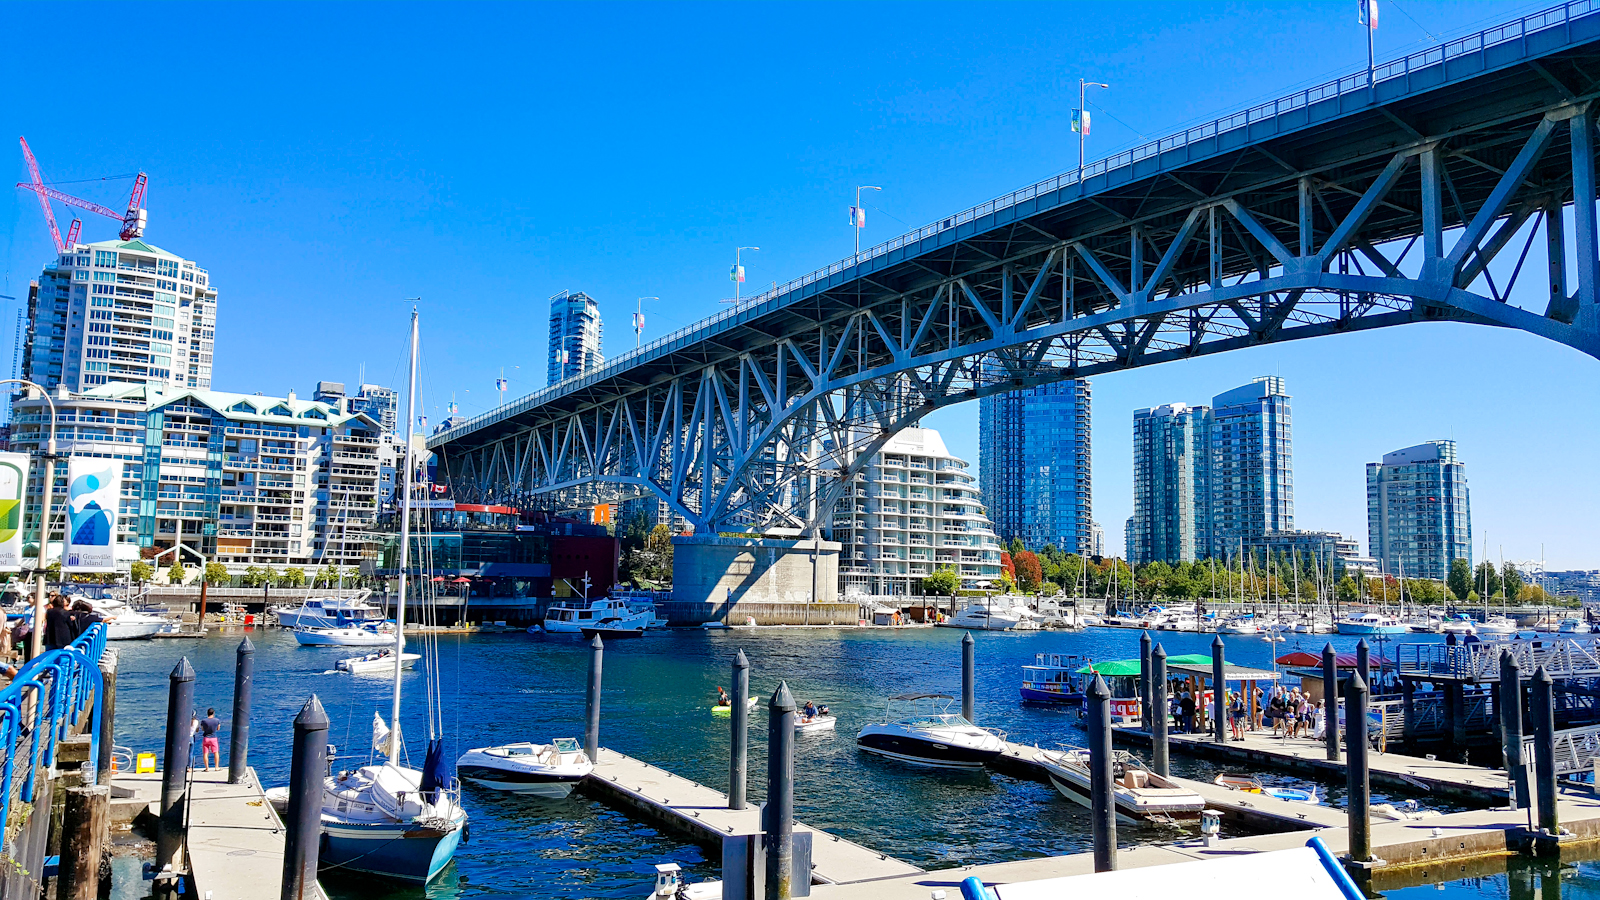 View of Yaletown from Granville Island